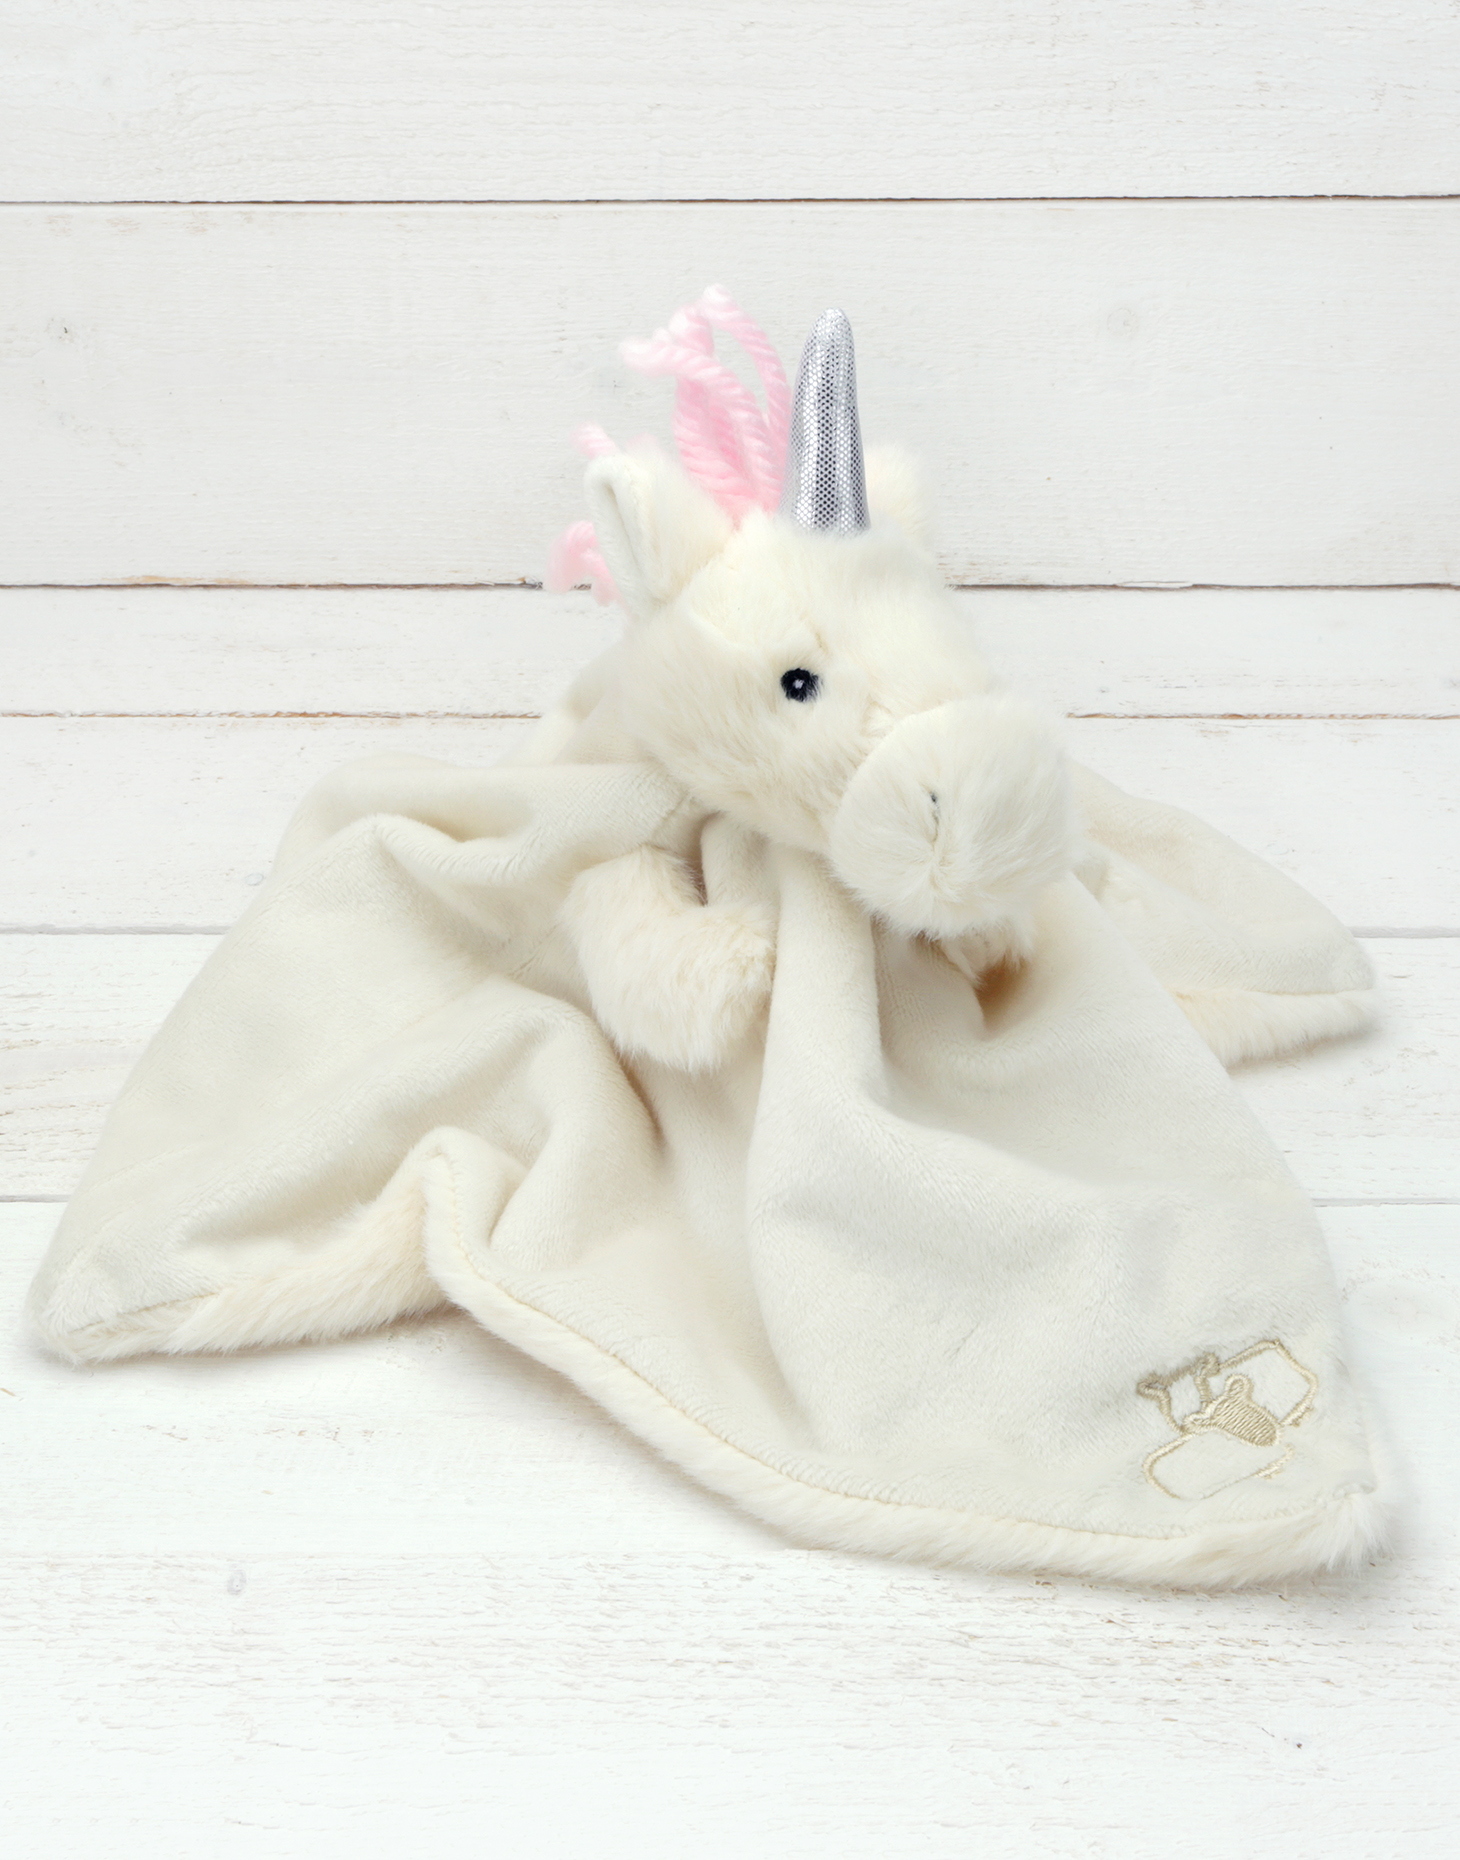 UNICORN SOOTHER/FINGER PUPPET JOMANDA